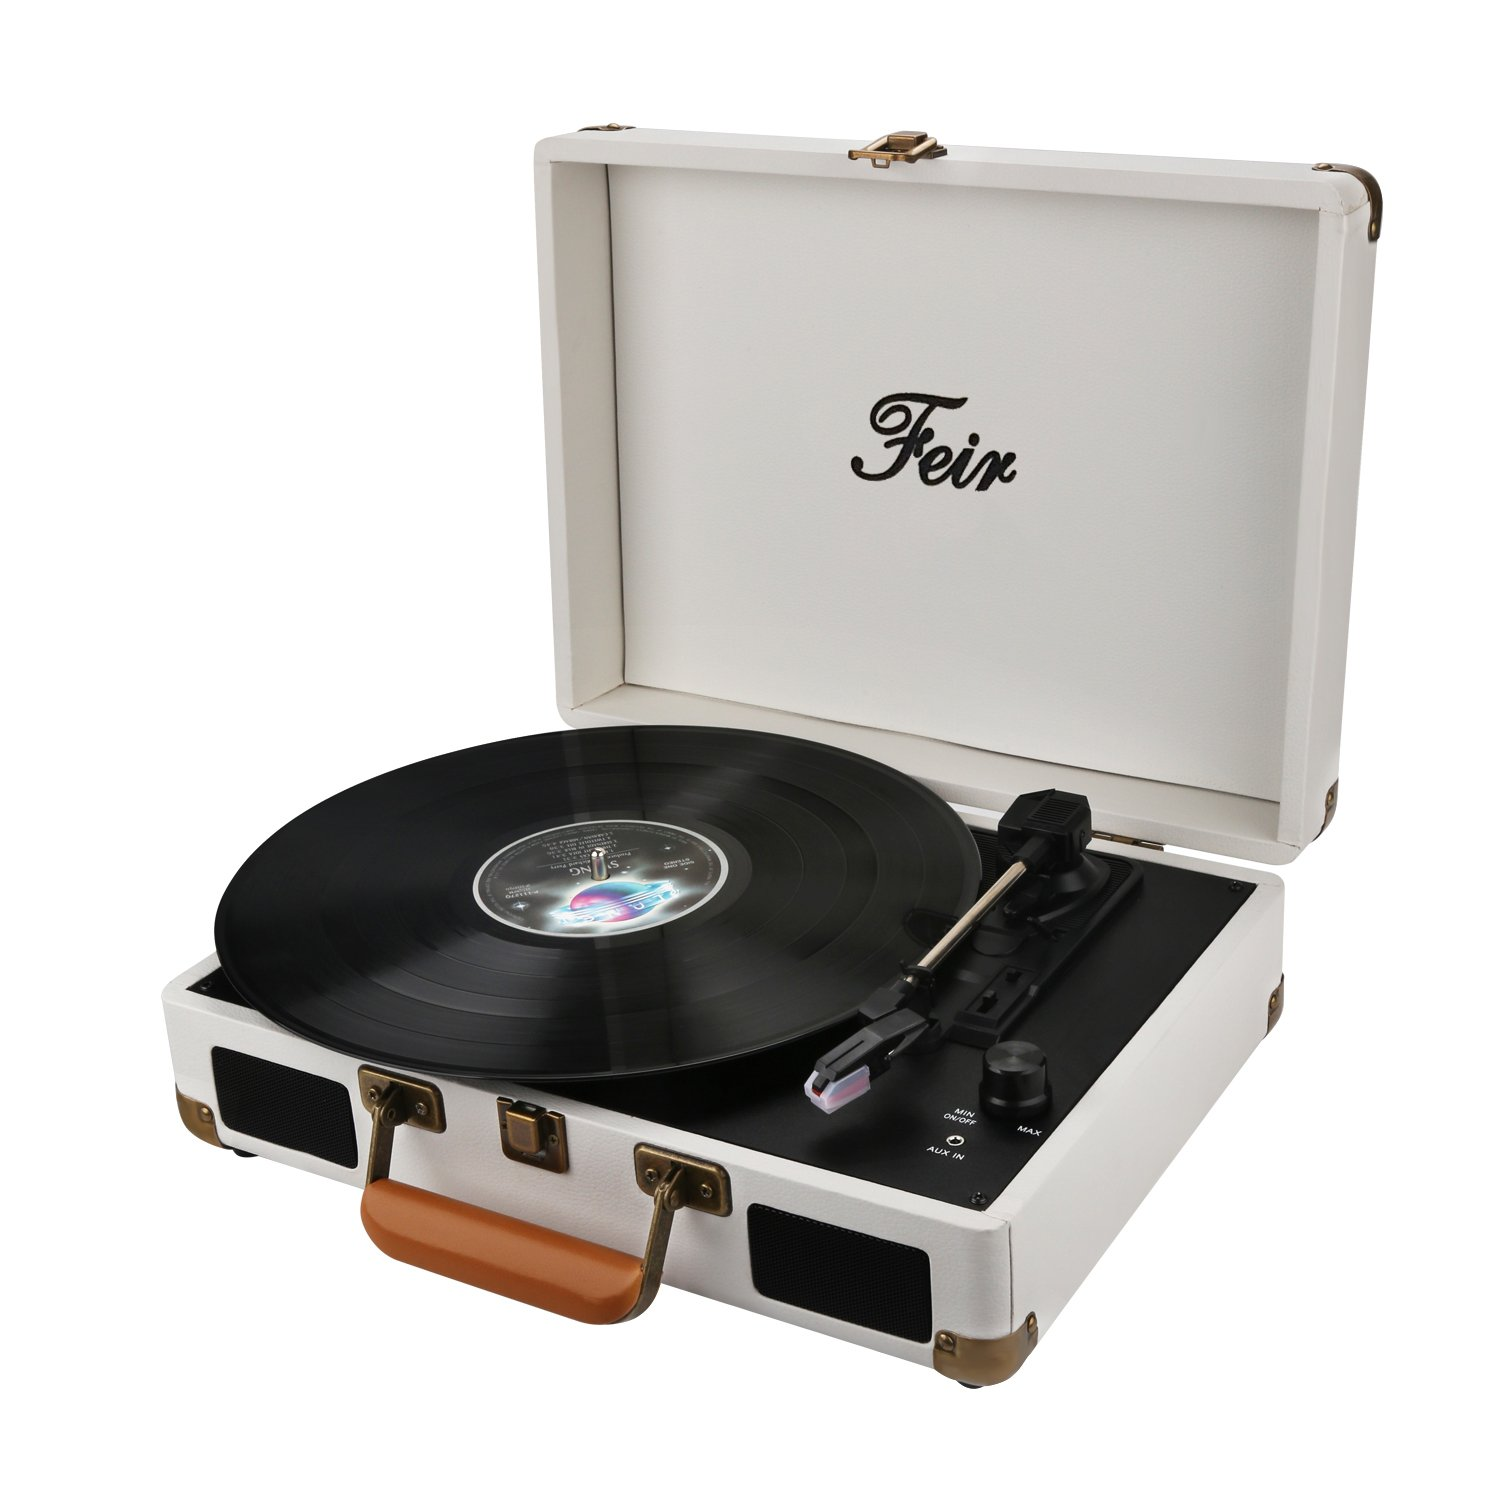 Vinyl Stereo White Record Player 3 Speed Portable Turntable Suitcase Built in 2 Speakers RCA Line Out AUX Headphone Jack PC Recorder by Feir